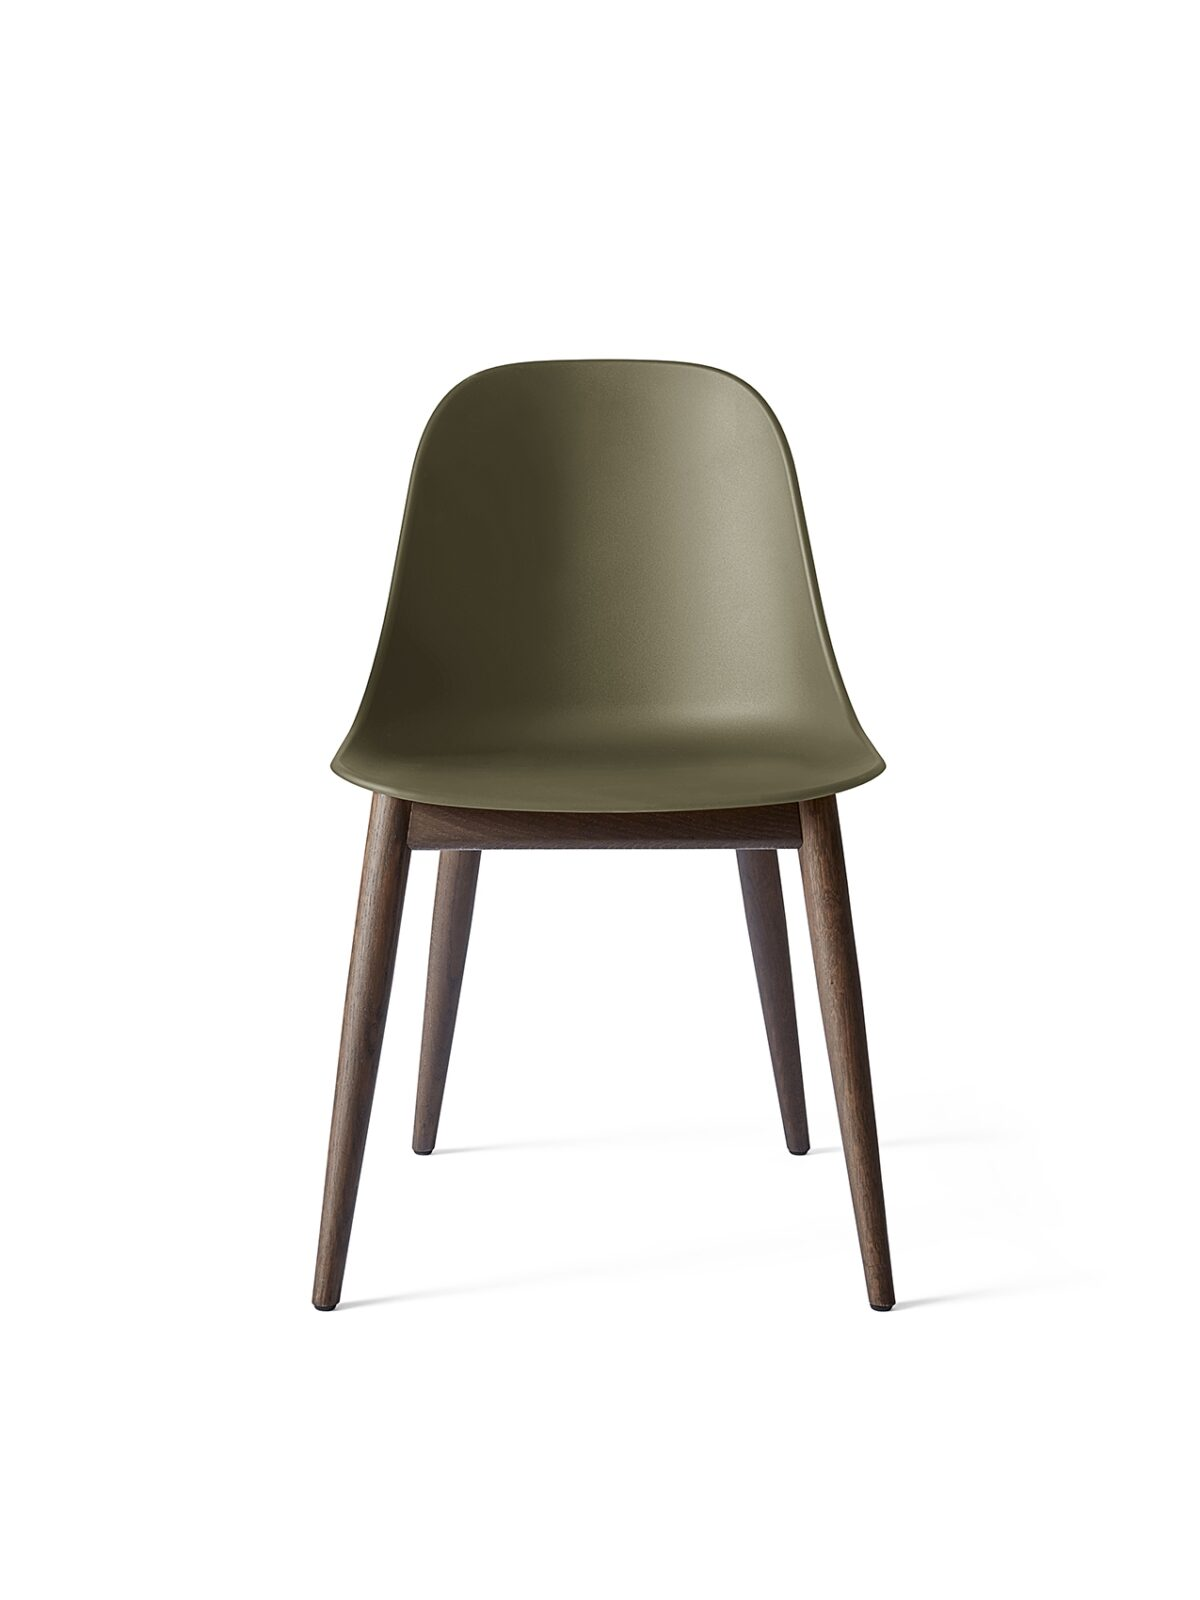 9278429 Harbour Side Chair Olive DarkStainedOak Front